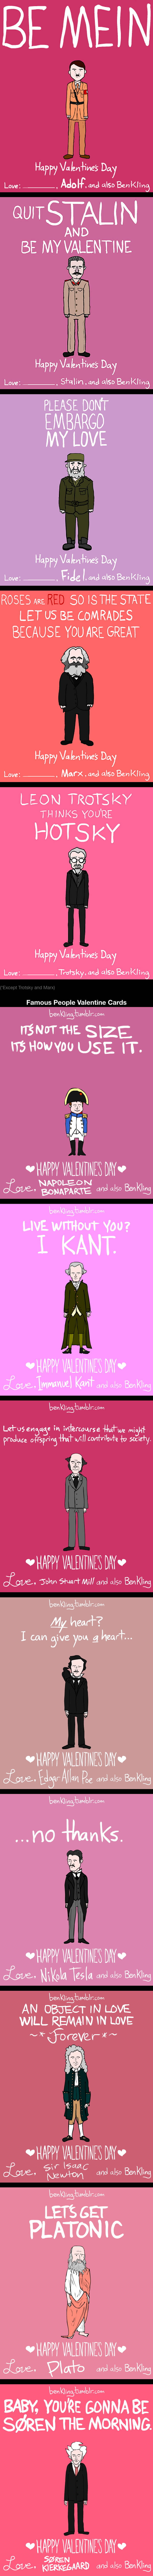 13 Dictator And Famous People Valentine Day Cards By Ben Kling 9gag